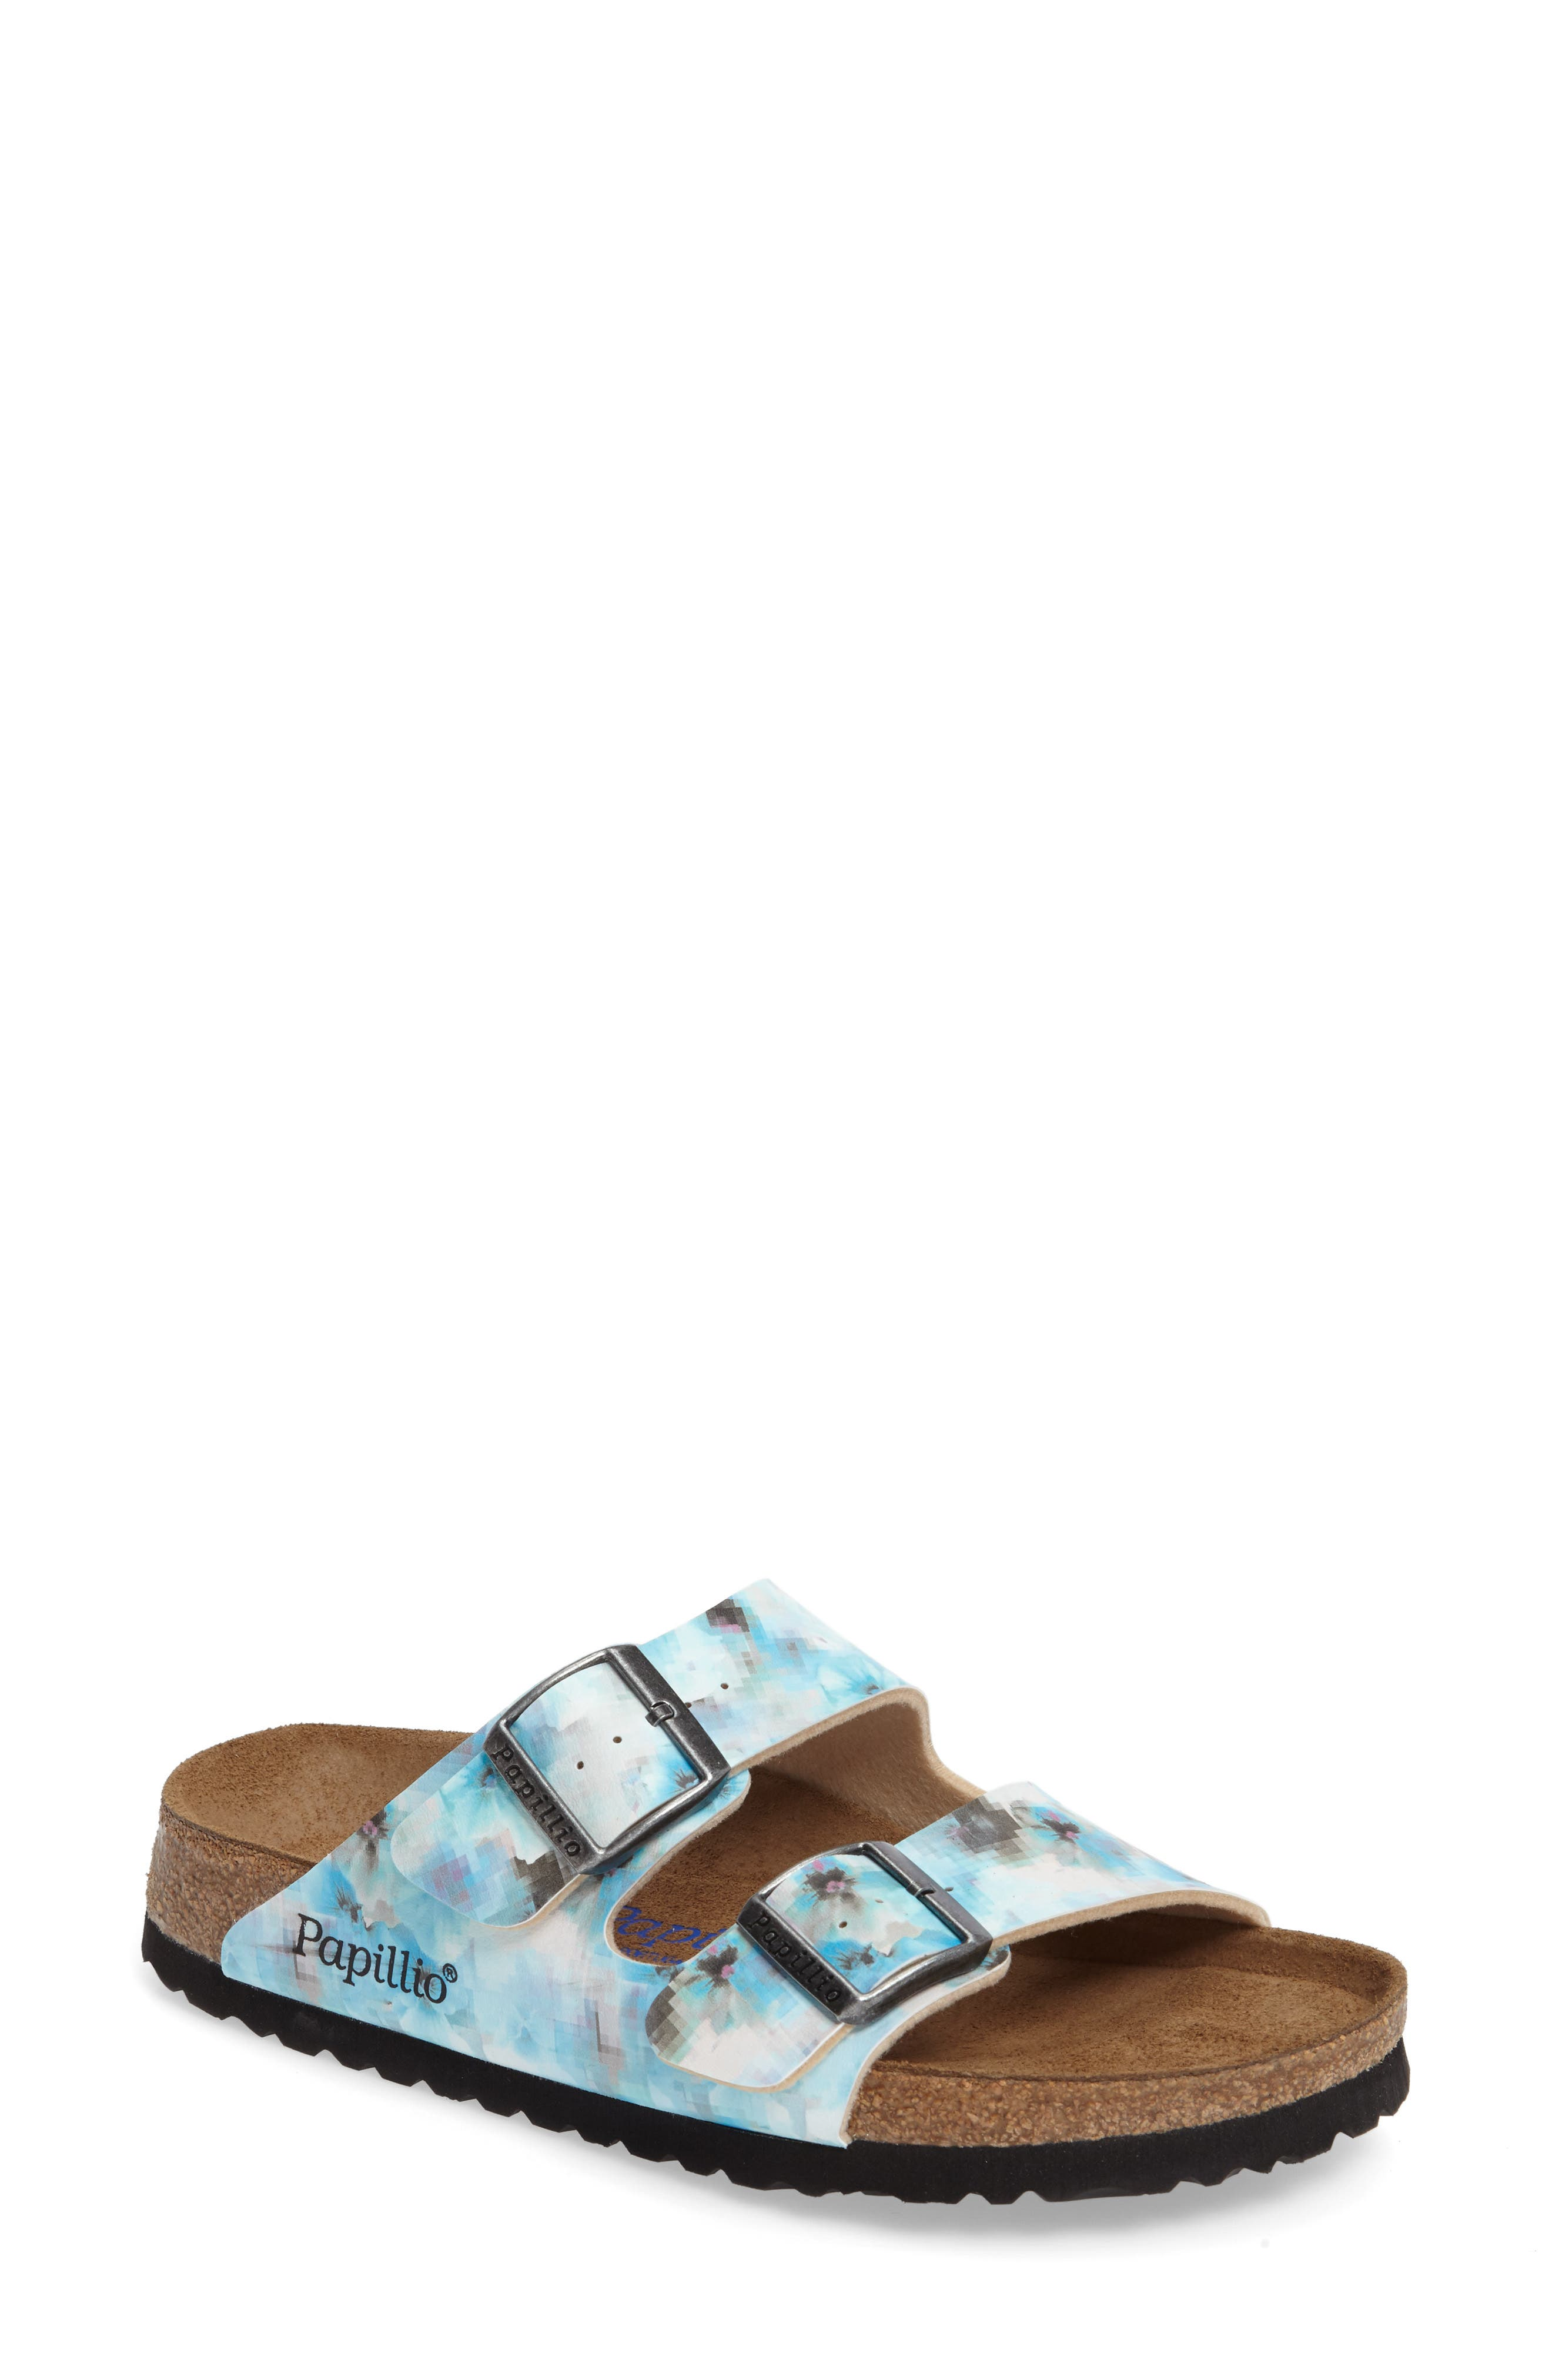 Papillio by Birkenstock 'Arizona' Birko-Flor Sandal,                             Main thumbnail 11, color,